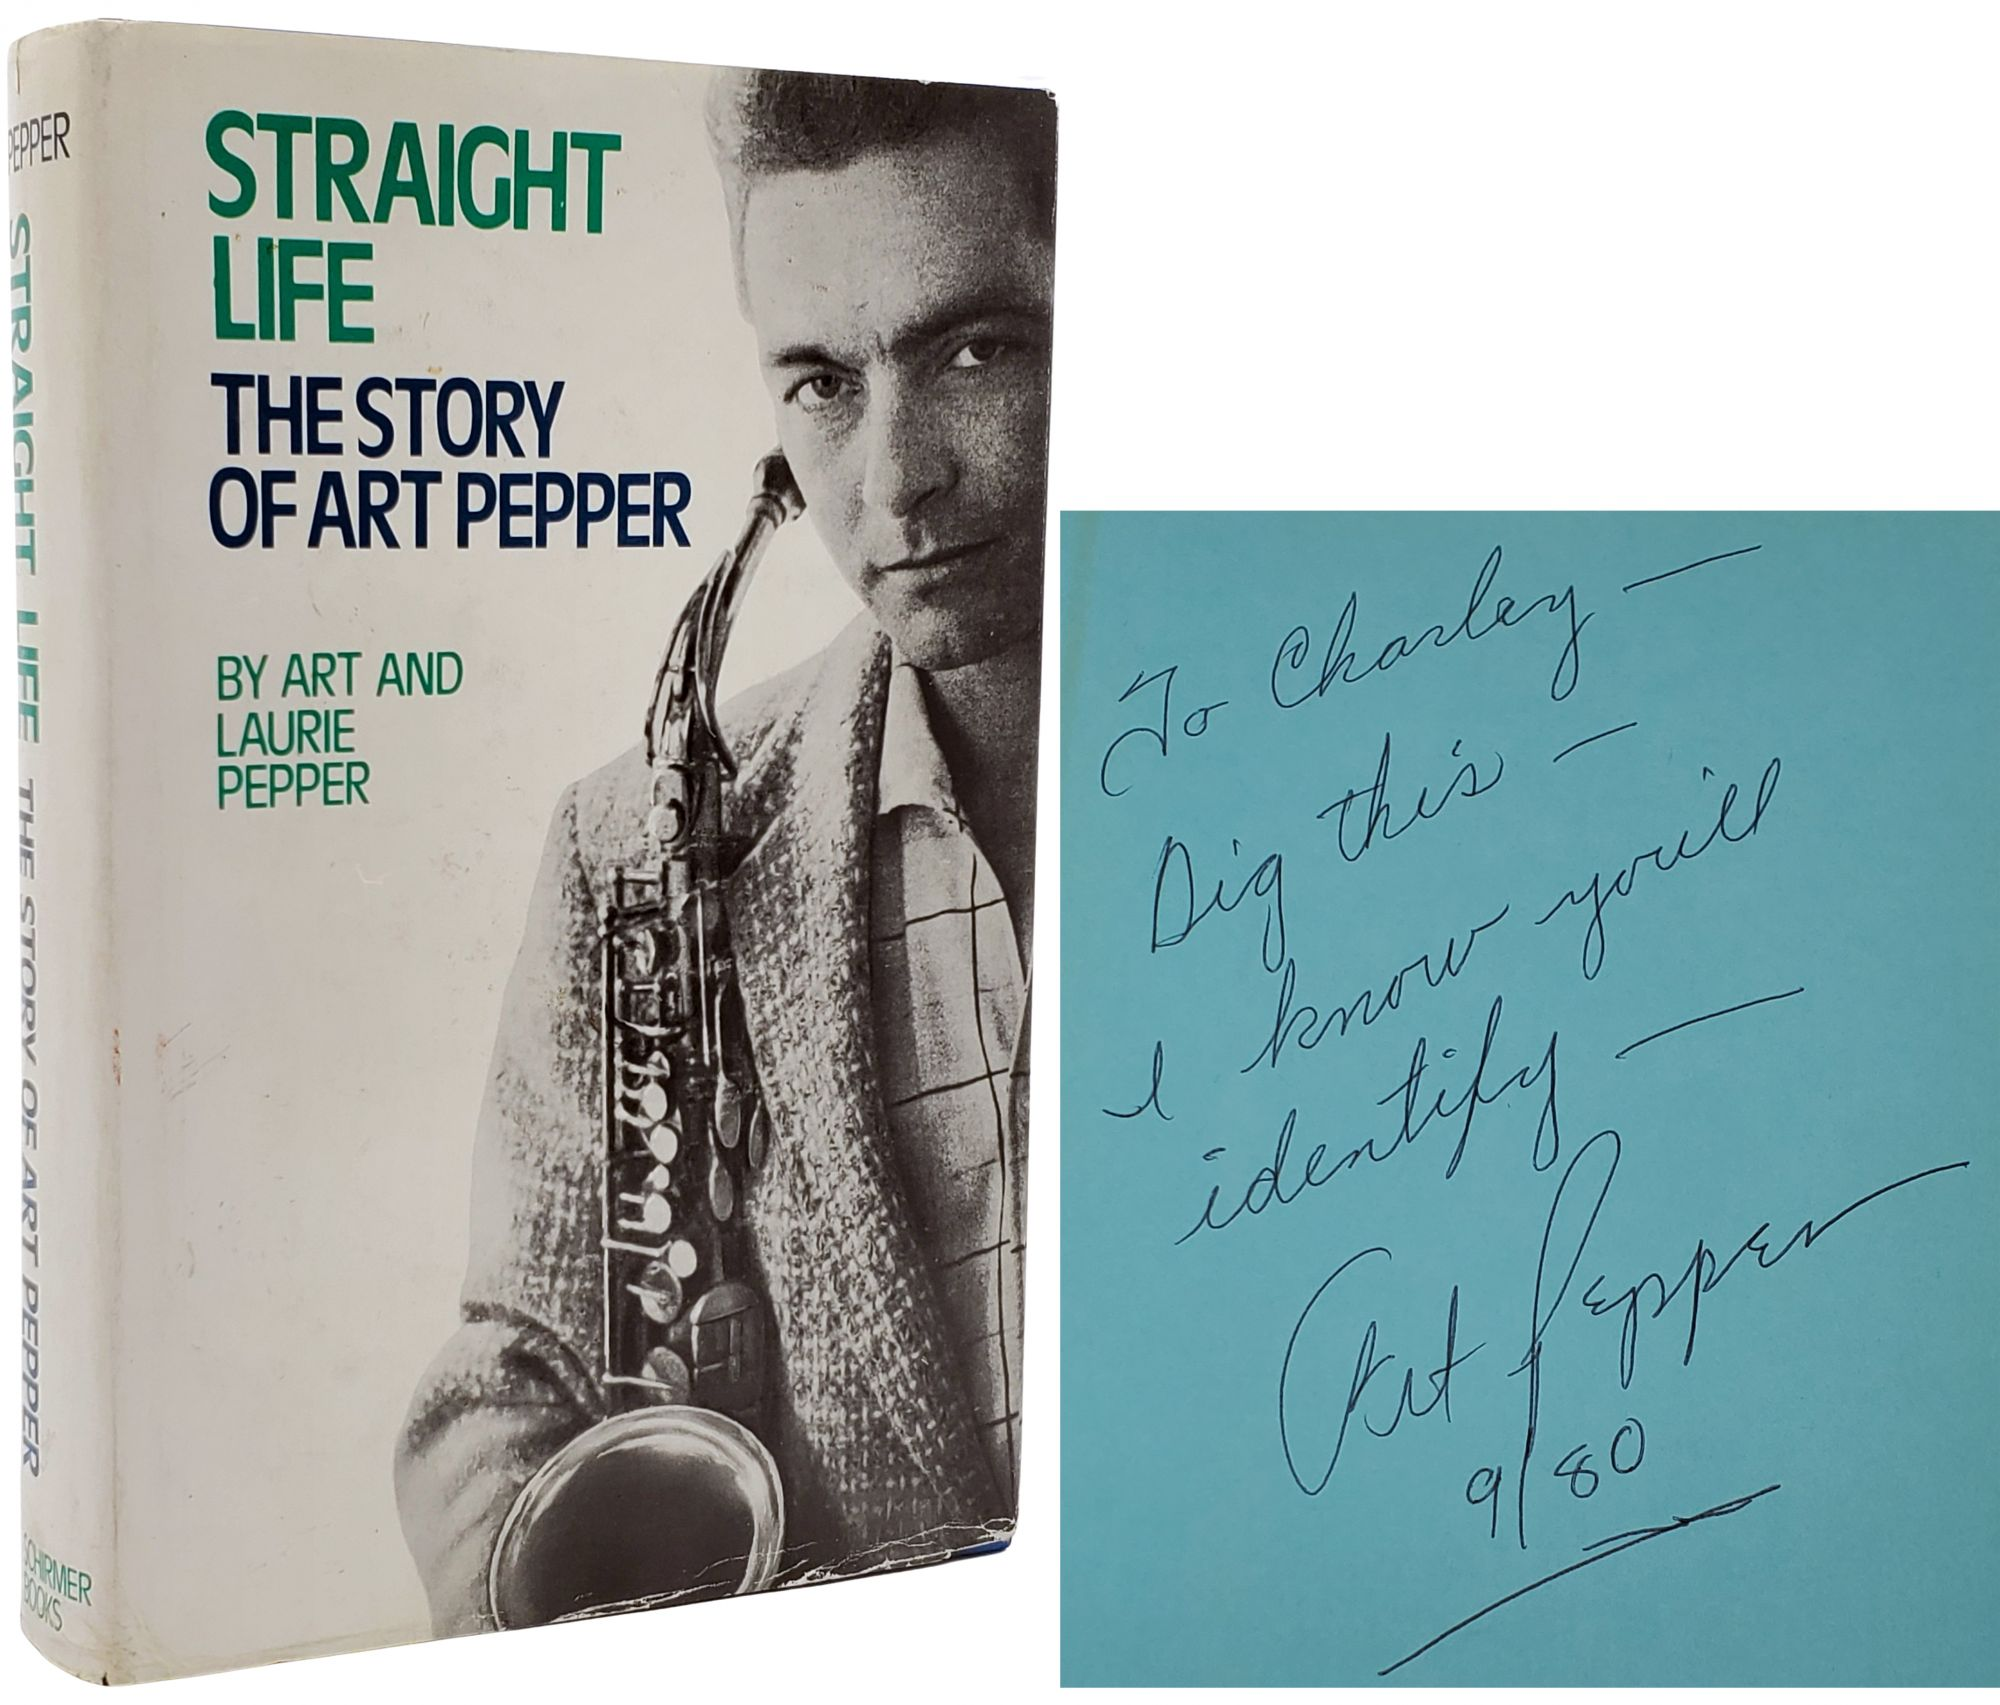 STRAIGHT LIFE. The Story of Art Pepper. Art and Laurie Pepper.